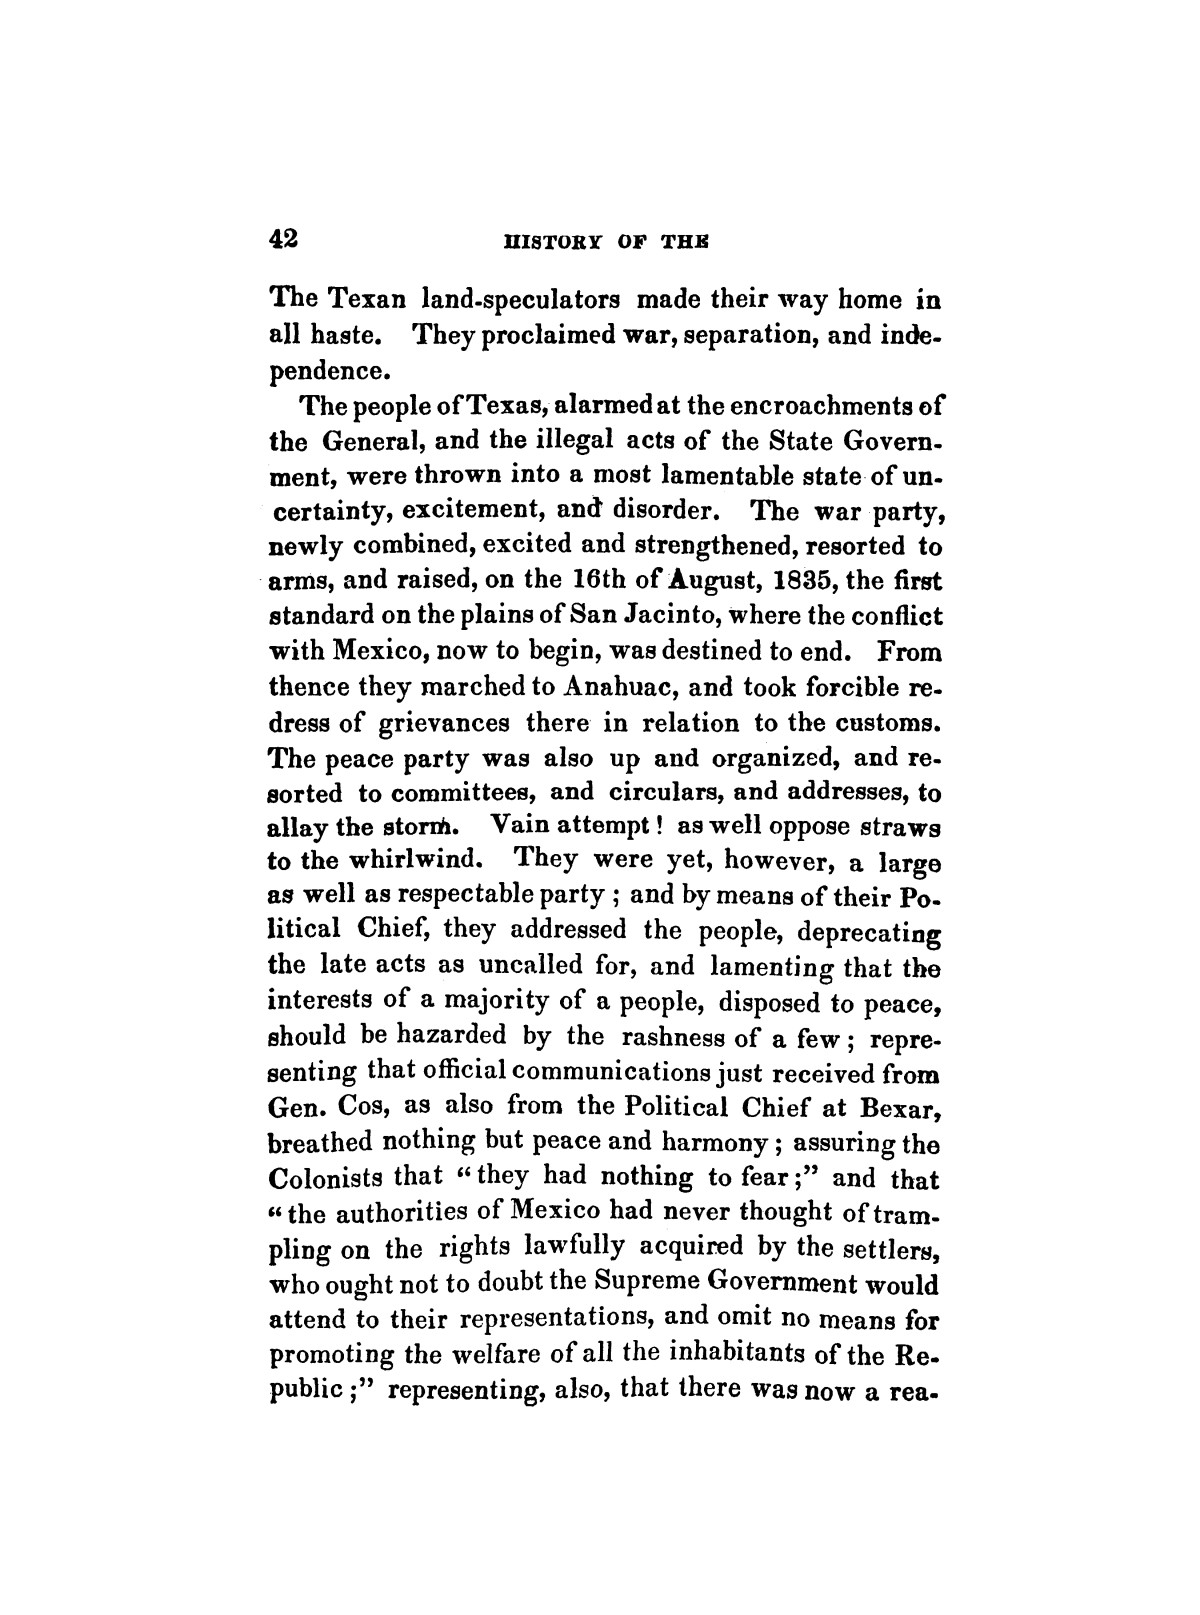 History of the revolution in Texas, particularly of the war of 1835 & '36; together with the latest geographical, topographical, and statistical accounts of the country, from the most authentic sources. Also, an appendix. By the Rev. C. Newell.                                                                                                      [Sequence #]: 54 of 227